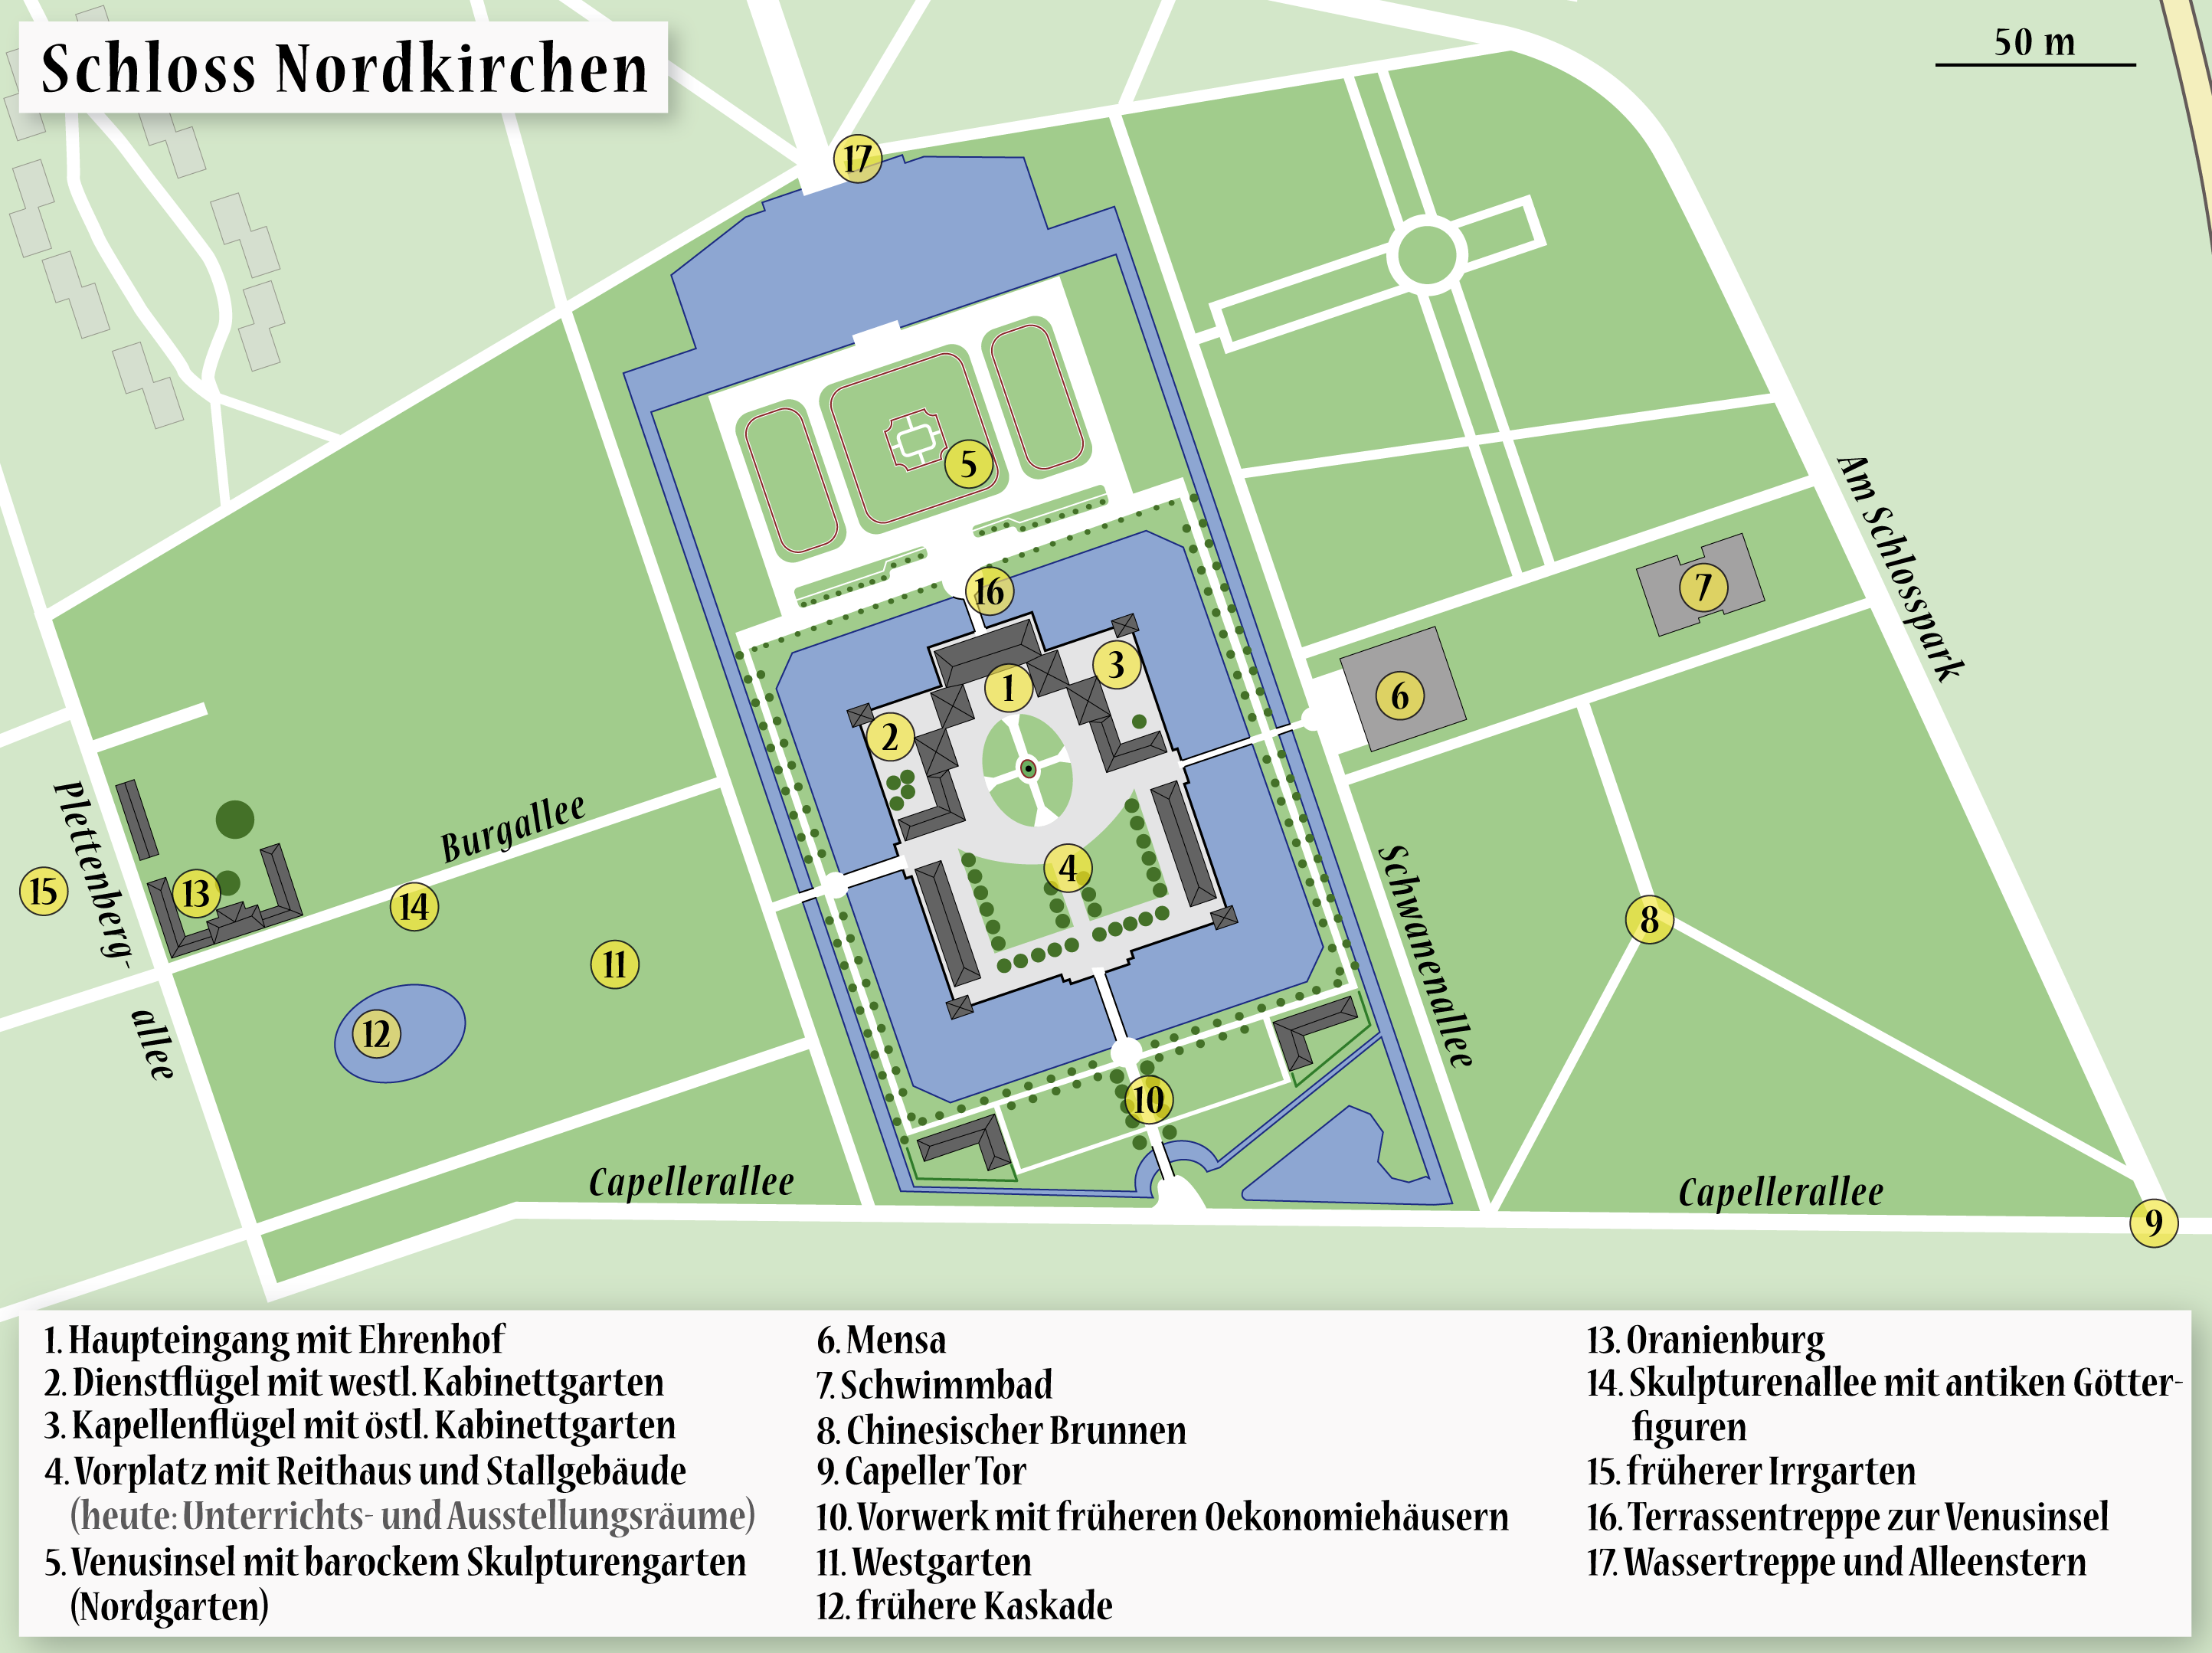 File:Map of the Castle Nordkirchen.png - Wikimedia Commons on map of a school, map of european castles, map of a restaurant, map of castles in england, map of a submarine, map of a dragon, map of a stadium, map of a medieval town, map of castles in germany, map of castles in ireland, elemental air castle, map of a cathedral, map of a volcano, map of a theater, map of a temple, map of a hospital, map of roman ruins, map of a tavern, map of a mountain, map of a mansion,